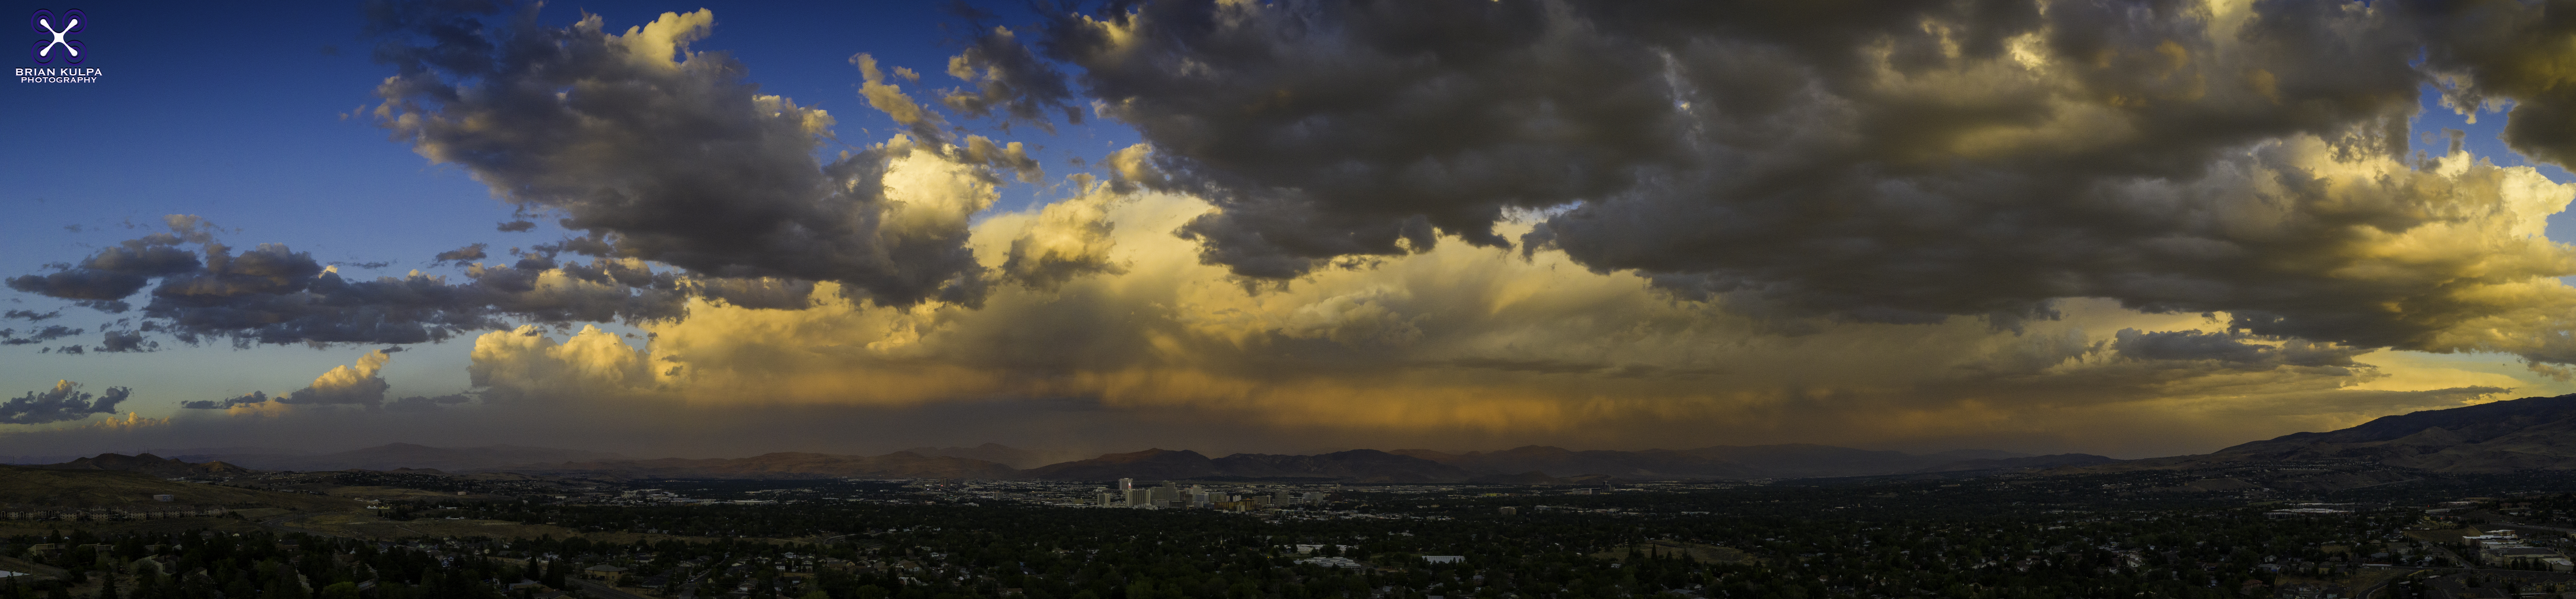 Reno Dust Storm Sunset